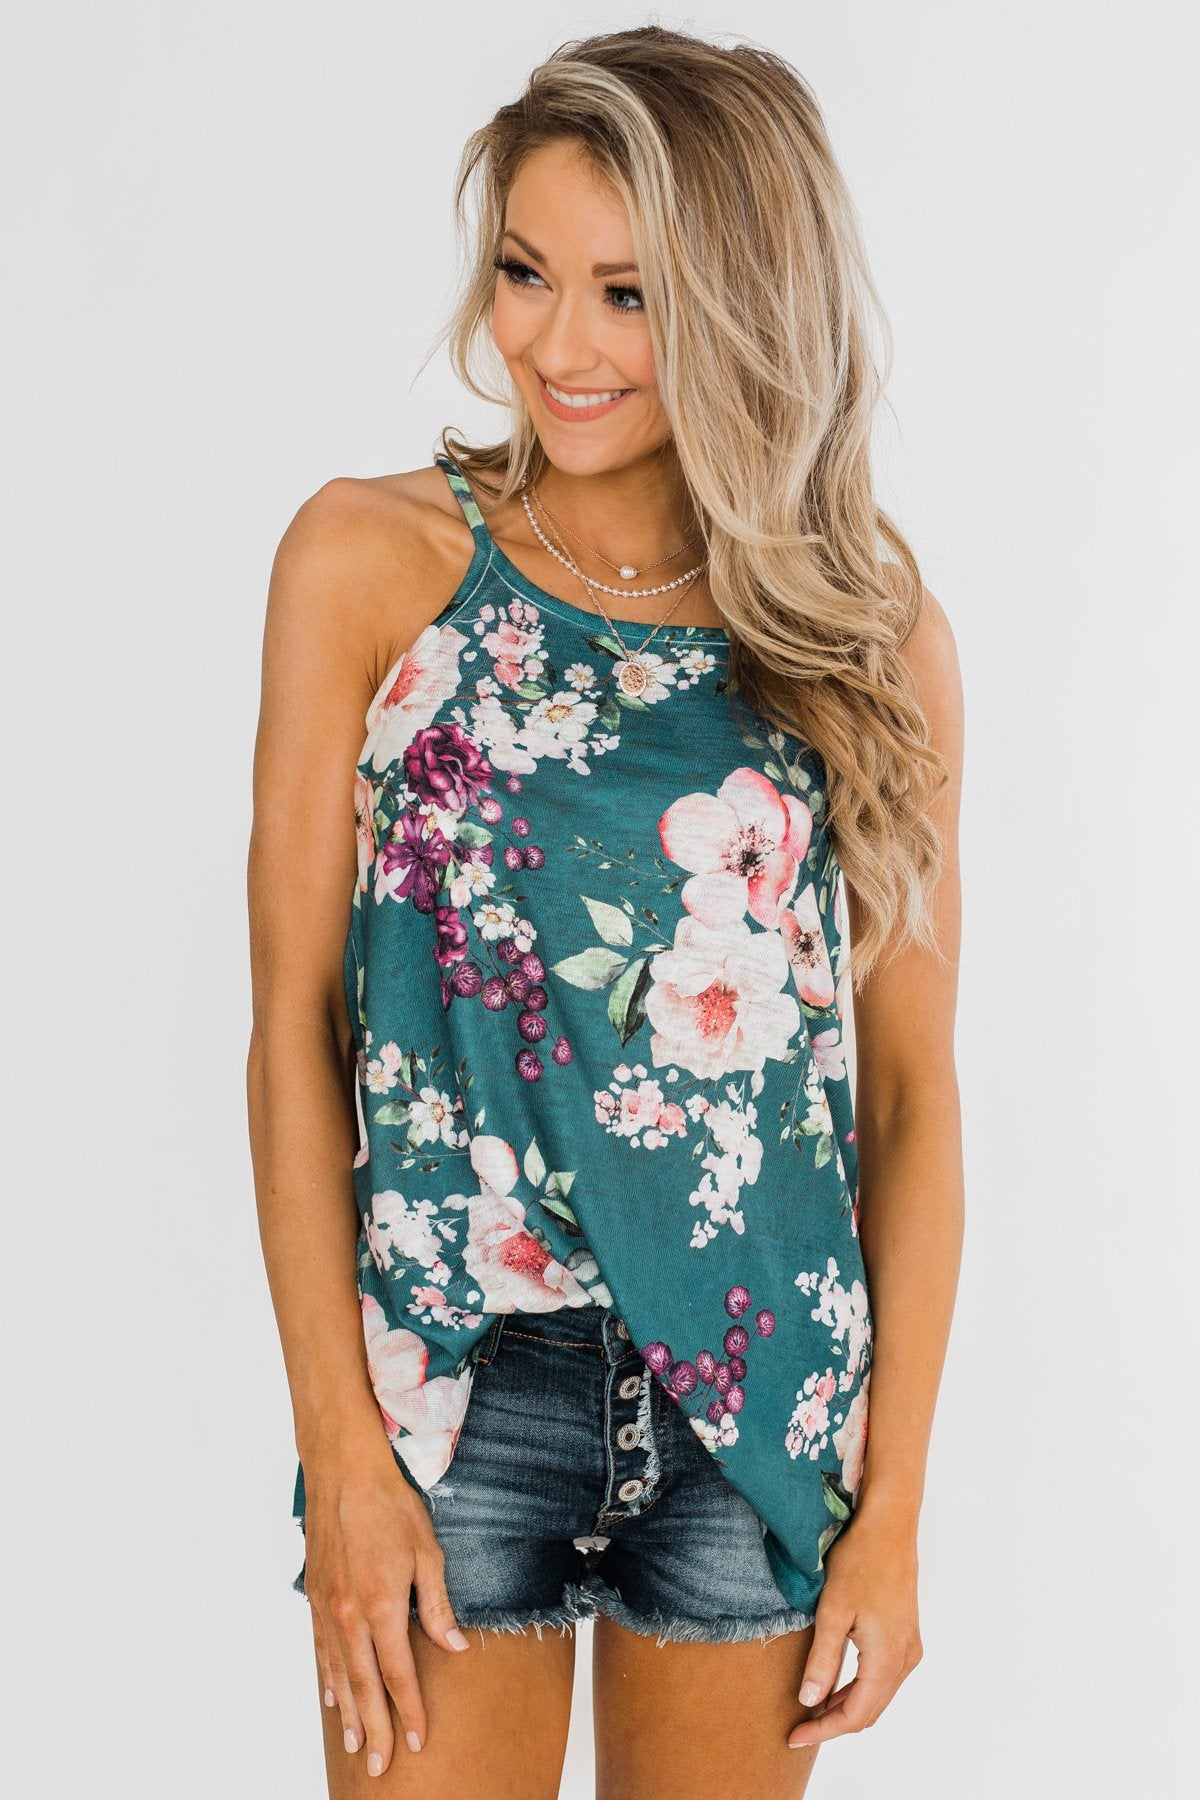 True Bliss Floral Tank Top- Dark Teal